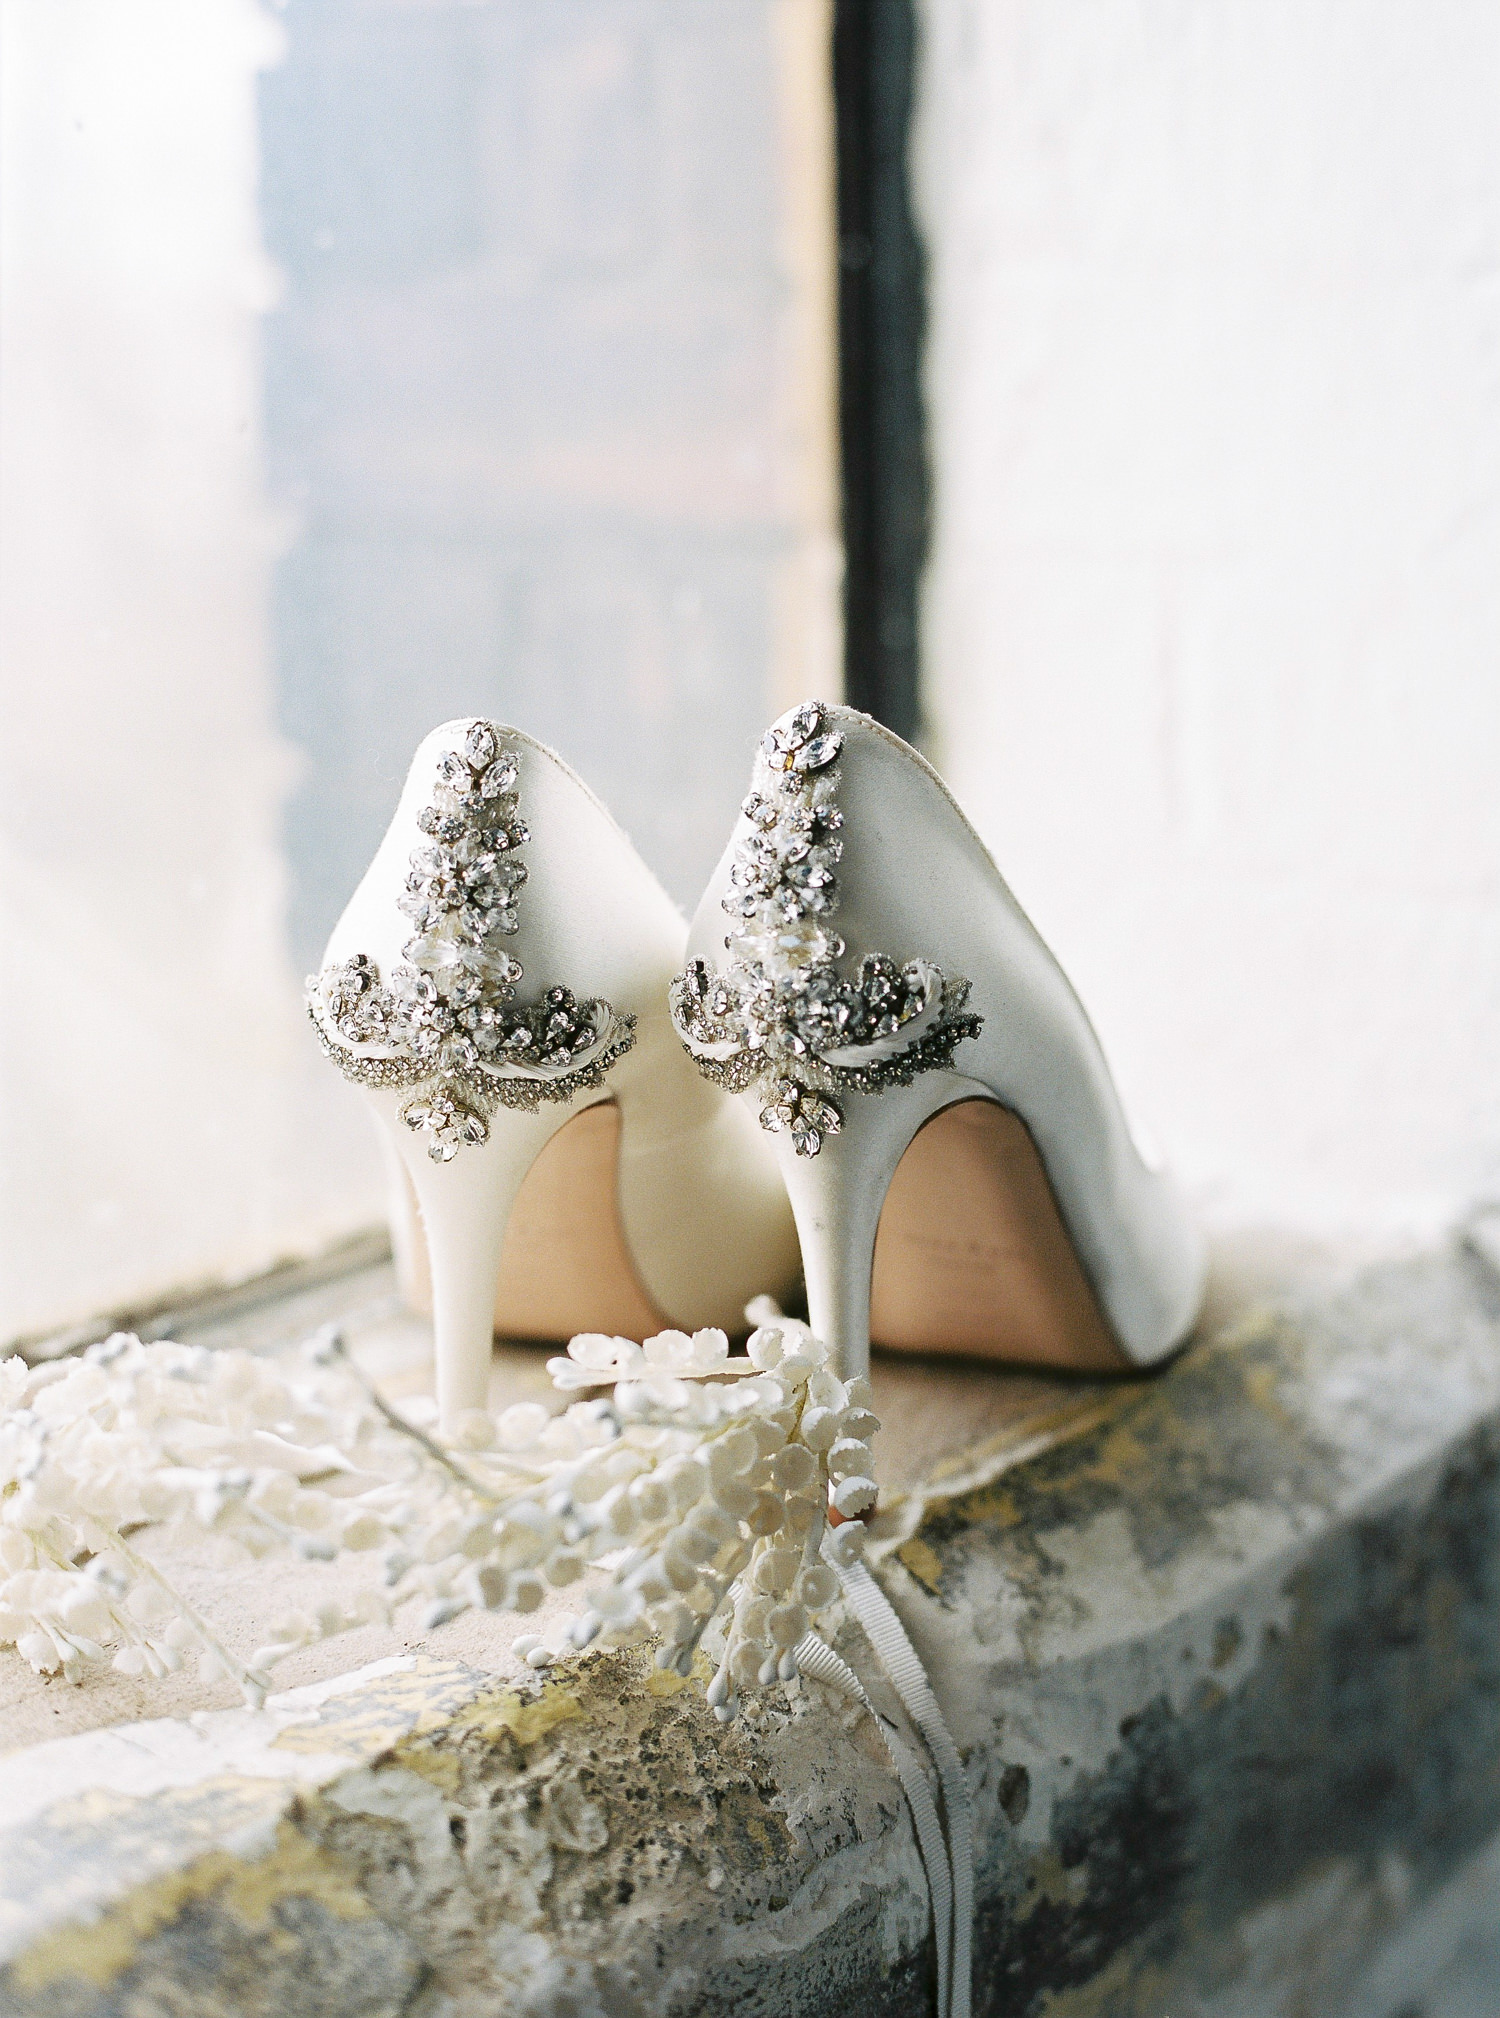 Freya Rose wedding shoes, Luna Bea headpiece